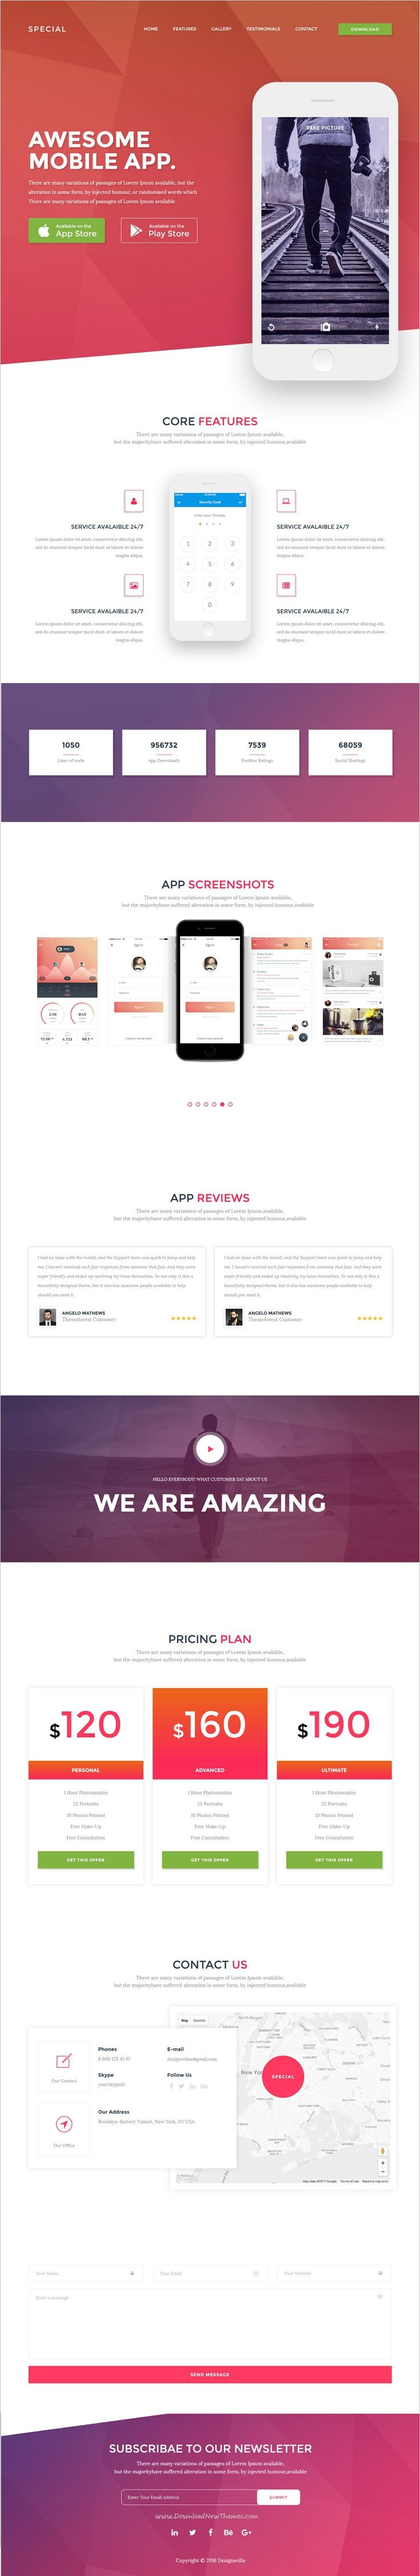 Special is a wonderful responsive #HTML Bootstrap template for awesome #app #landing page website with 28+ homepage layouts and 500 elements download now➩ https://themeforest.net/item/special-multipurpose-html-template-with-page-builder/18490465?ref=Datasata